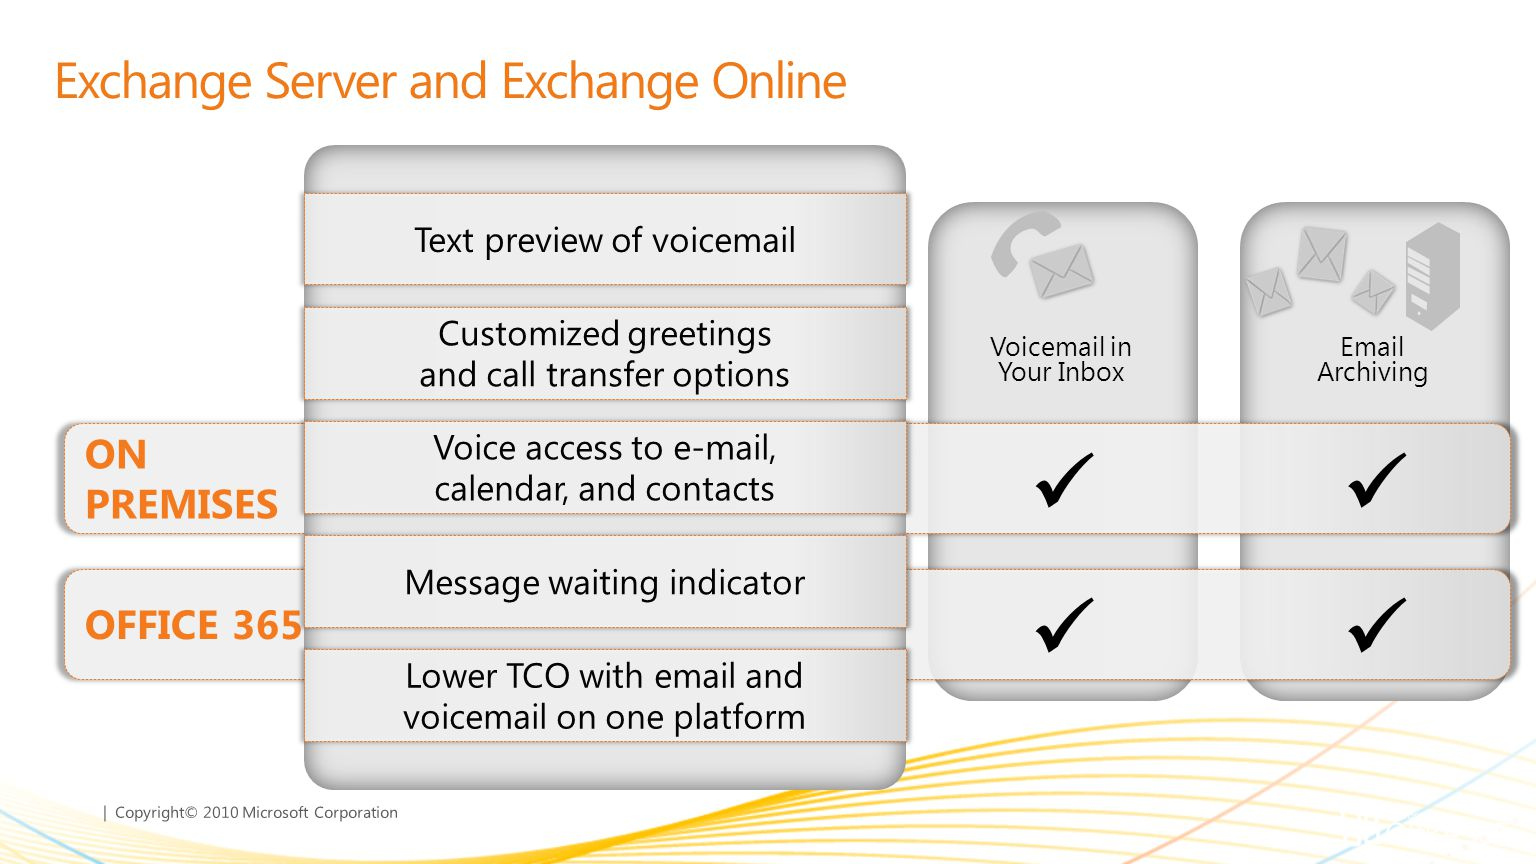 | Copyright© 2010 Microsoft Corporation Exchange Server and Exchange Online Mobile Collaboration  & Calendar Voic in Your Inbox  Archiving Text preview of voic Customized greetings and call transfer options Voice access to  , calendar, and contacts Message waiting indicator Lower TCO with  and voic on one platform